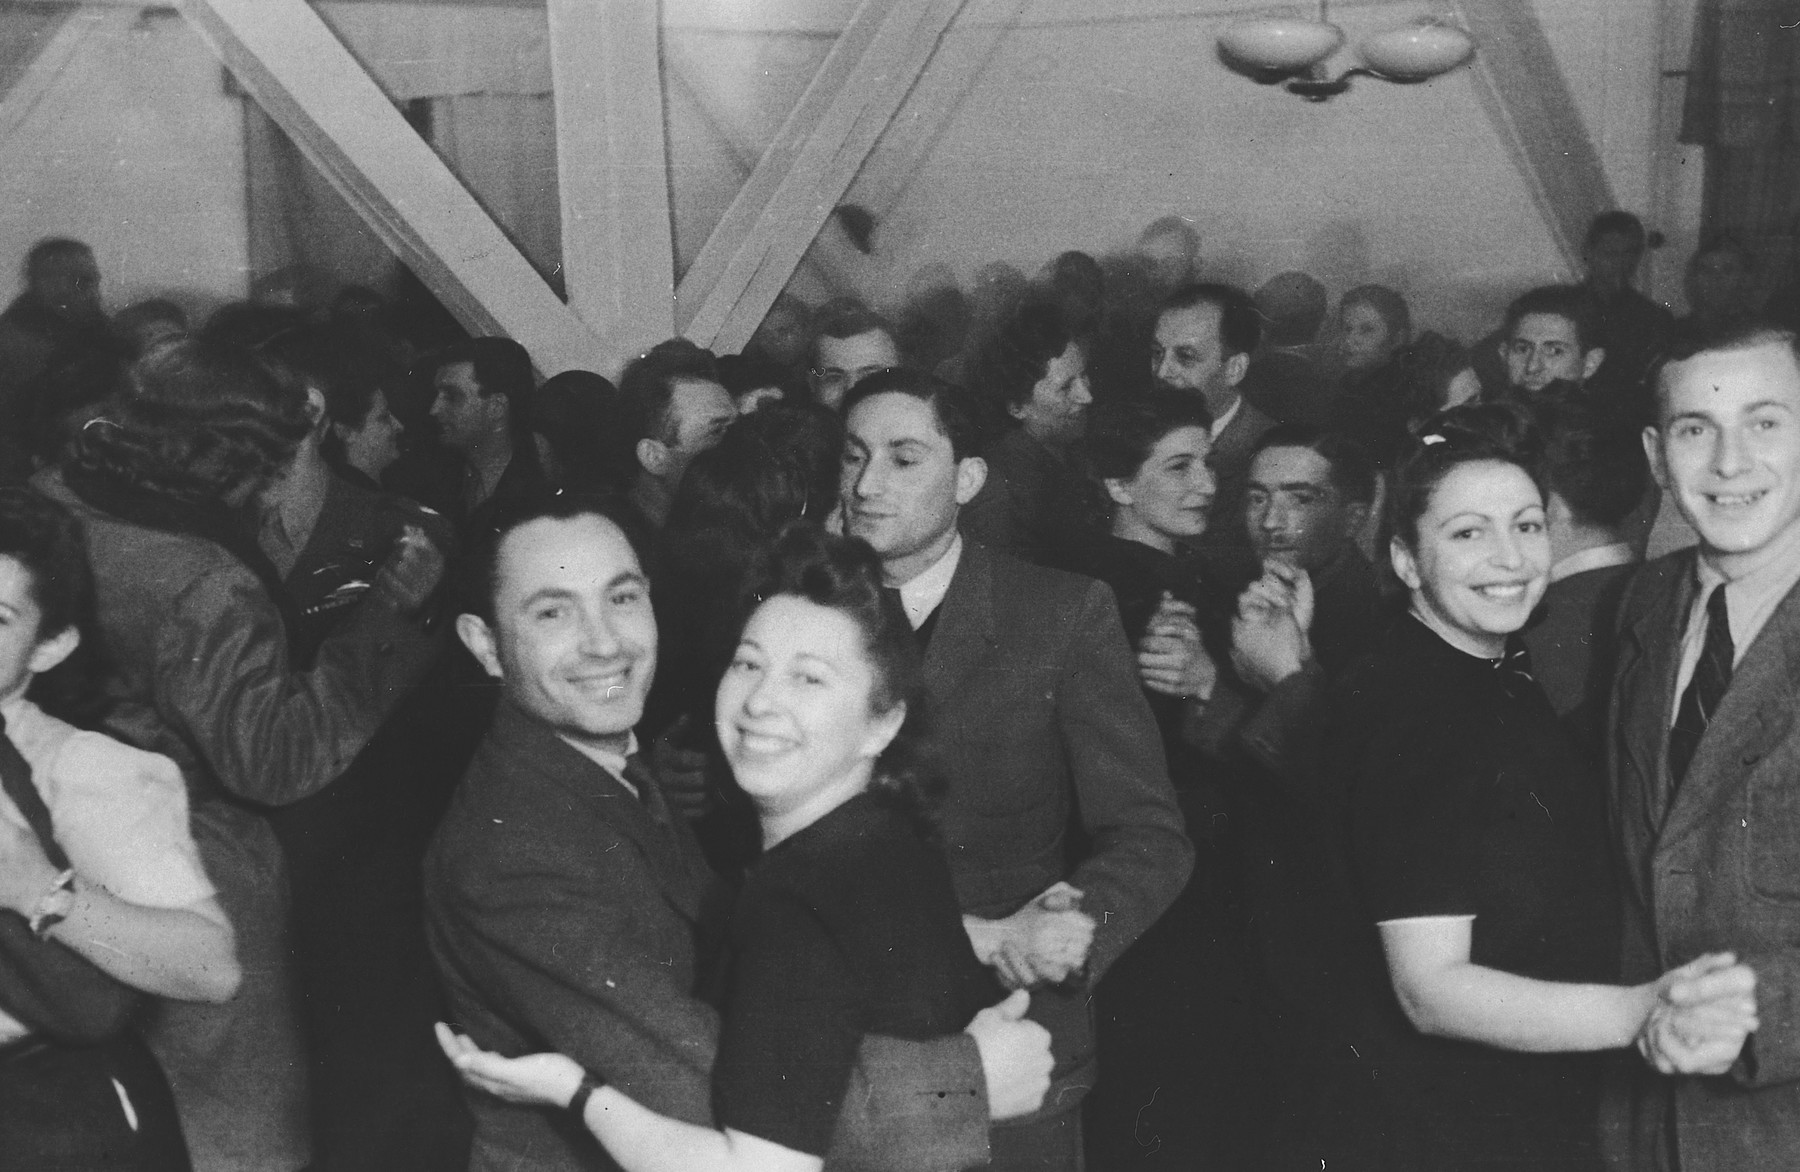 Couples in the Landsberg DP camp dance in a large public hall.